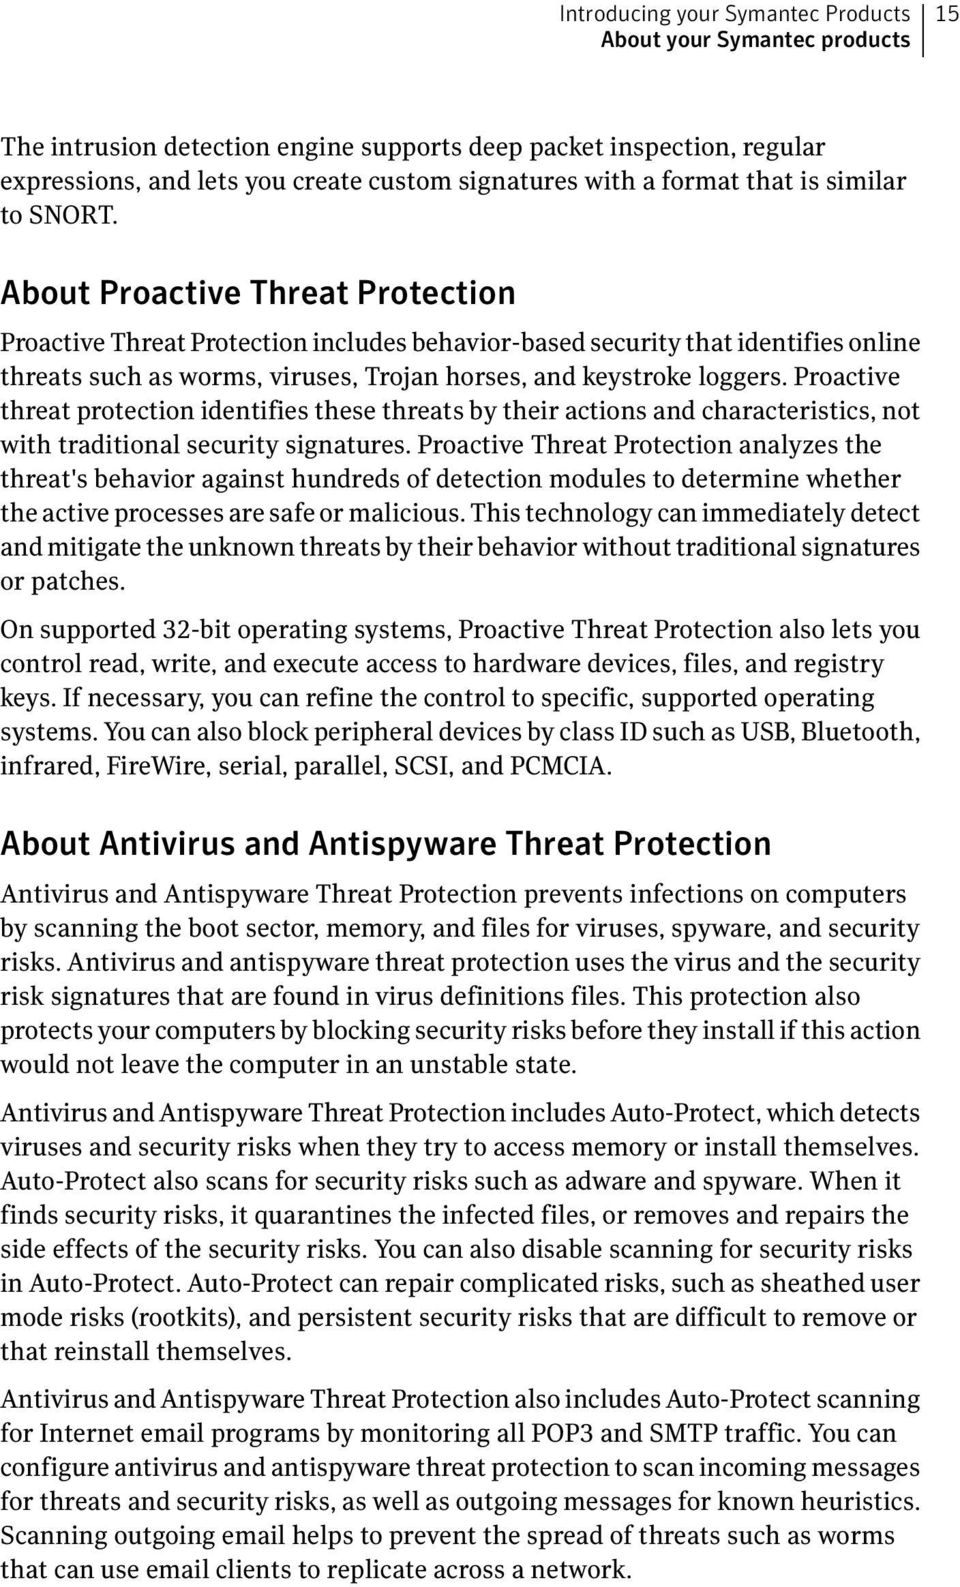 About Proactive Threat Protection Proactive Threat Protection includes behavior-based security that identifies online threats such as worms, viruses, Trojan horses, and keystroke loggers.